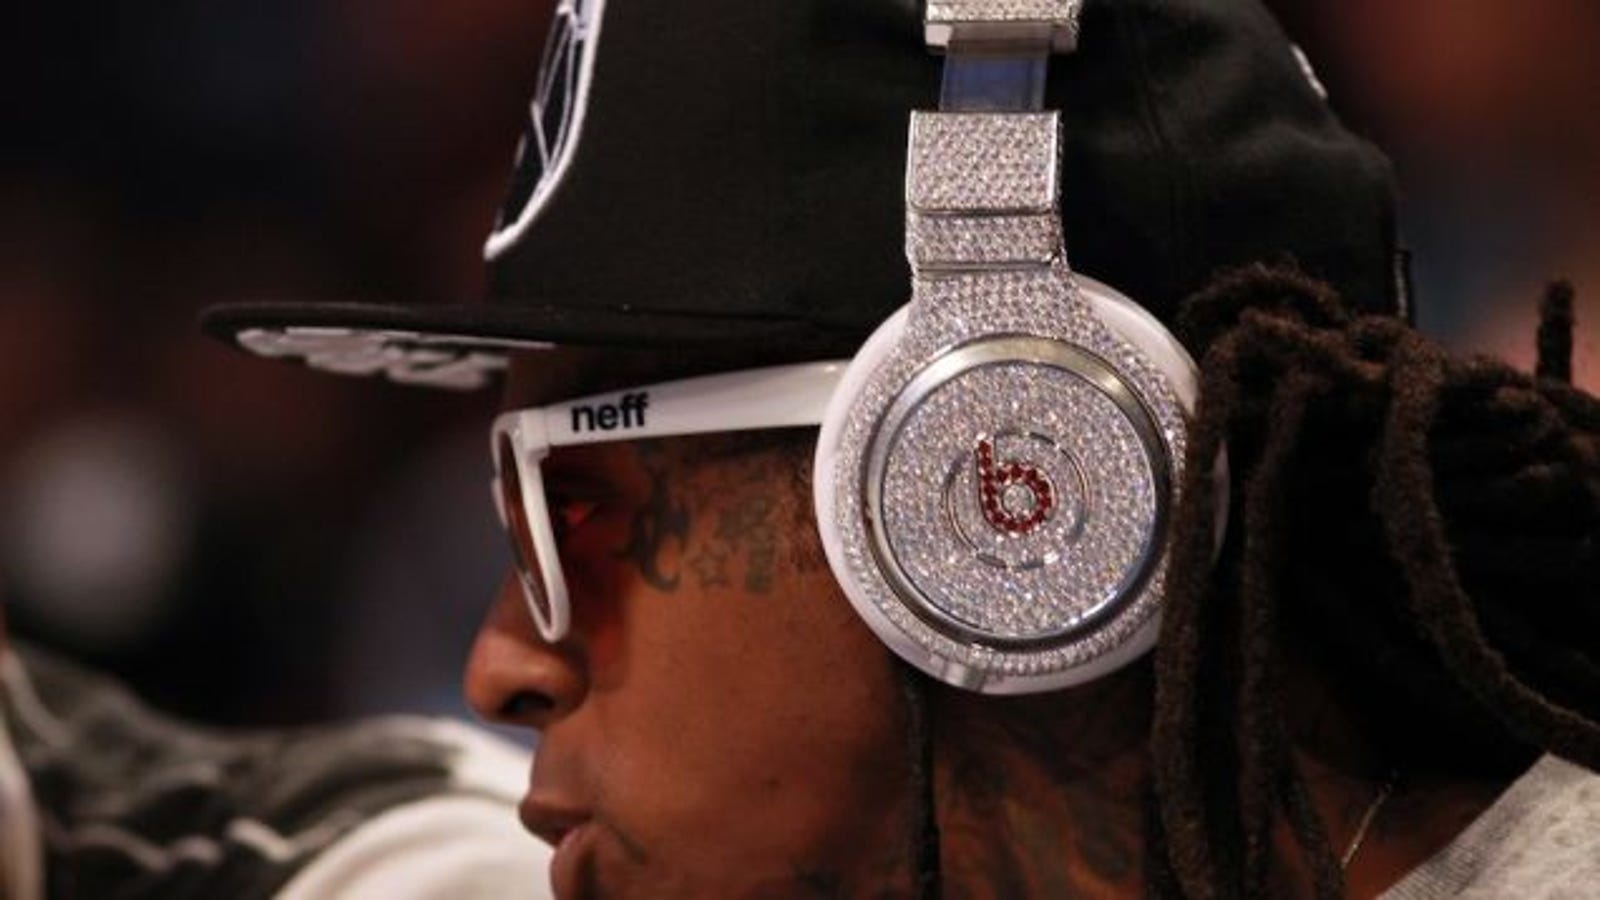 headphone extender flat screen - Report: Apple Is Getting Ready to Buy Beats for $3.2 Billion